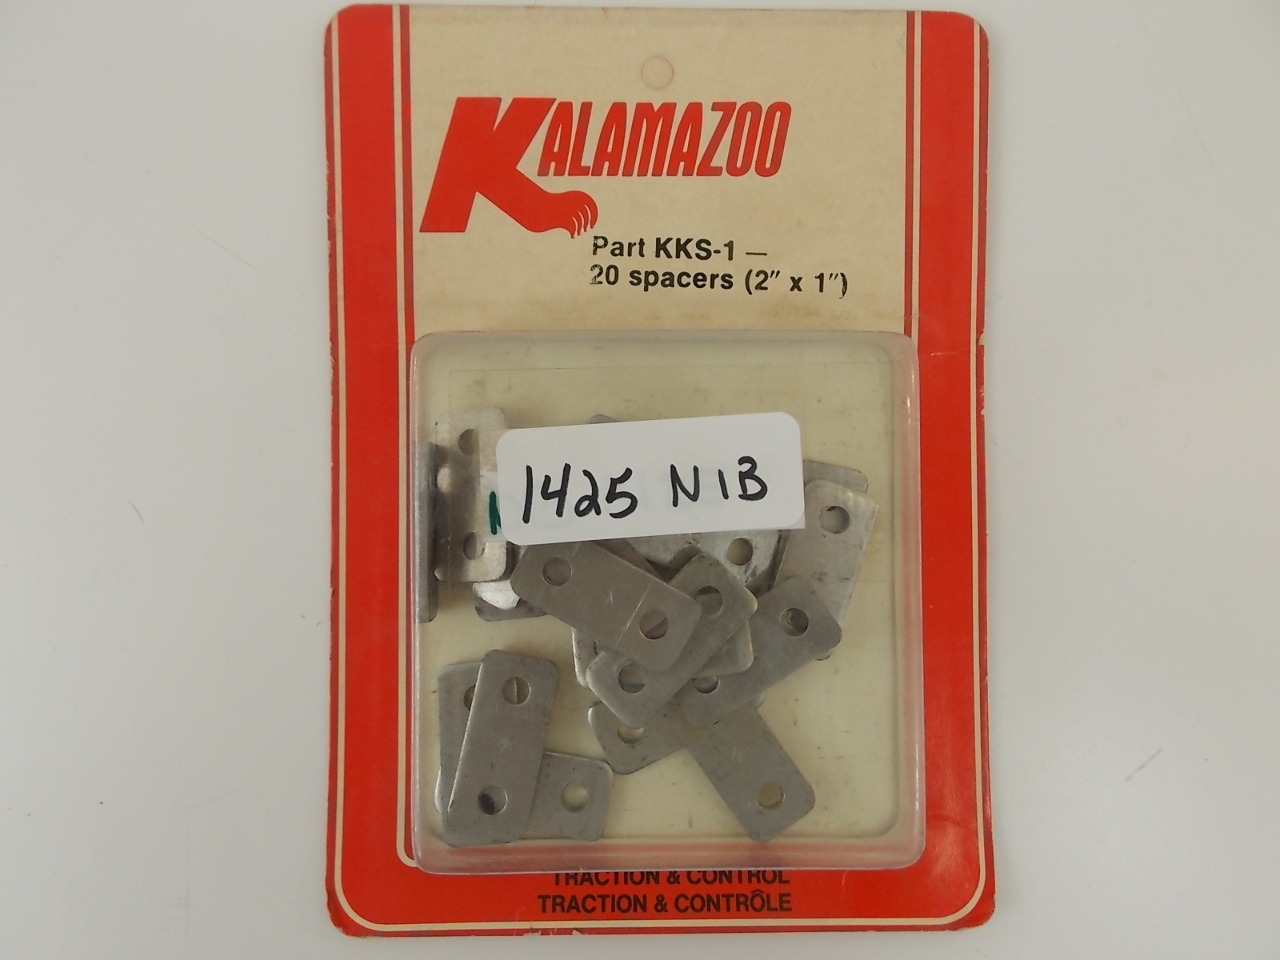 """Details about  NEW Kalamazoo Snowmobile Backing Plat Spacers 20 2"""" X 1"""" Traction & Contl KKS-1"""